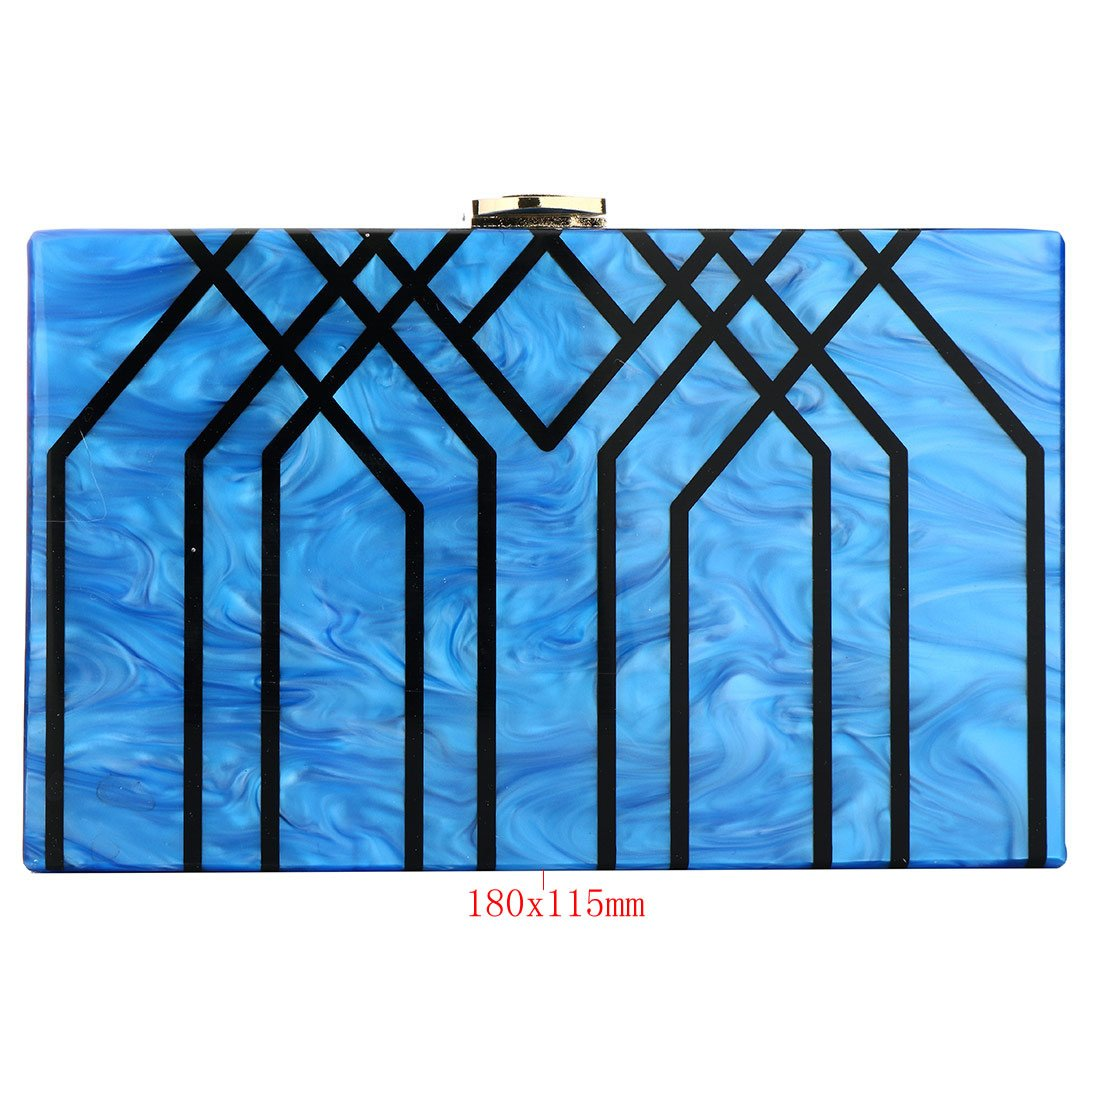 Evening Handbag Box Acrylic Clutch Stripes Shoulder Bag for Party (Black) by KNUS (Image #3)